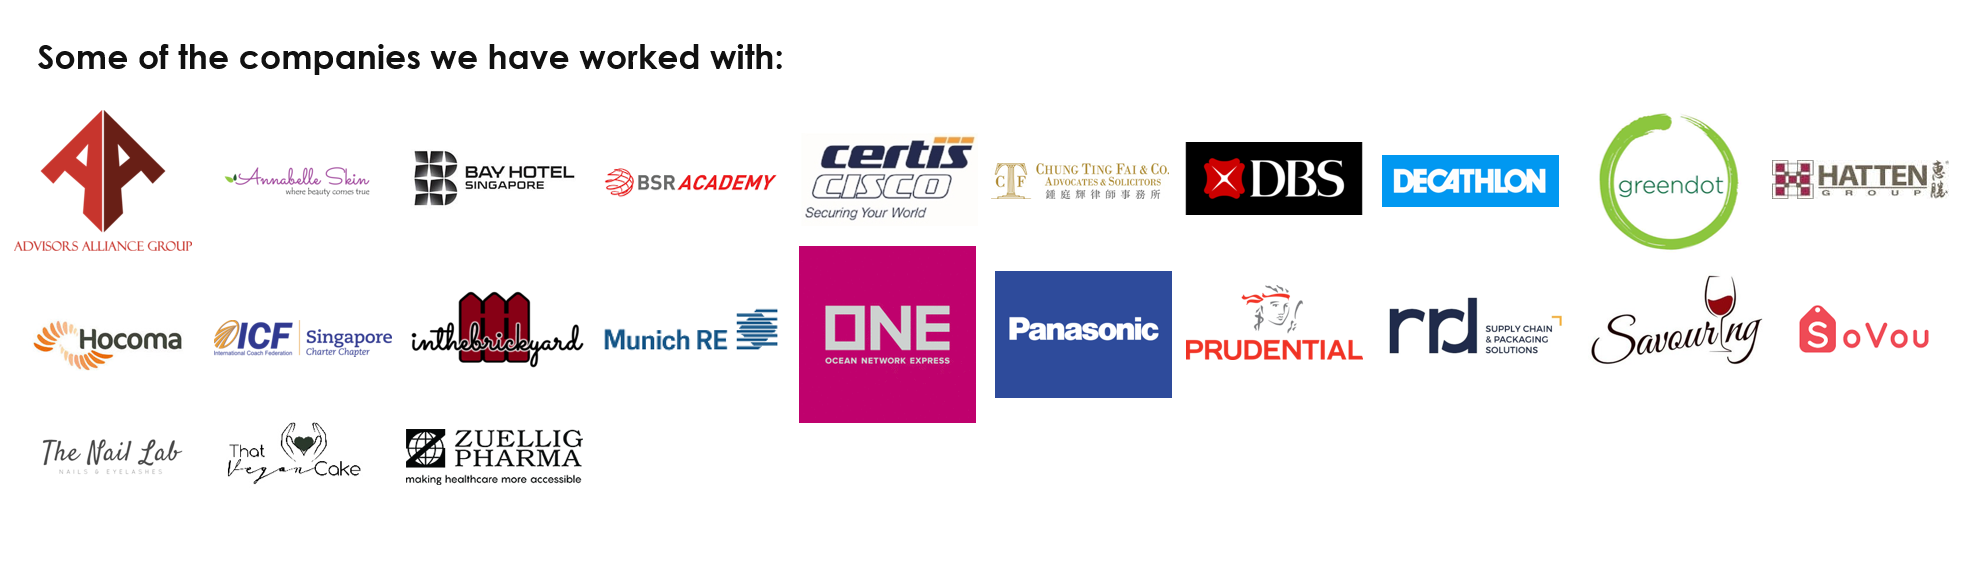 Companies we have worked with.png